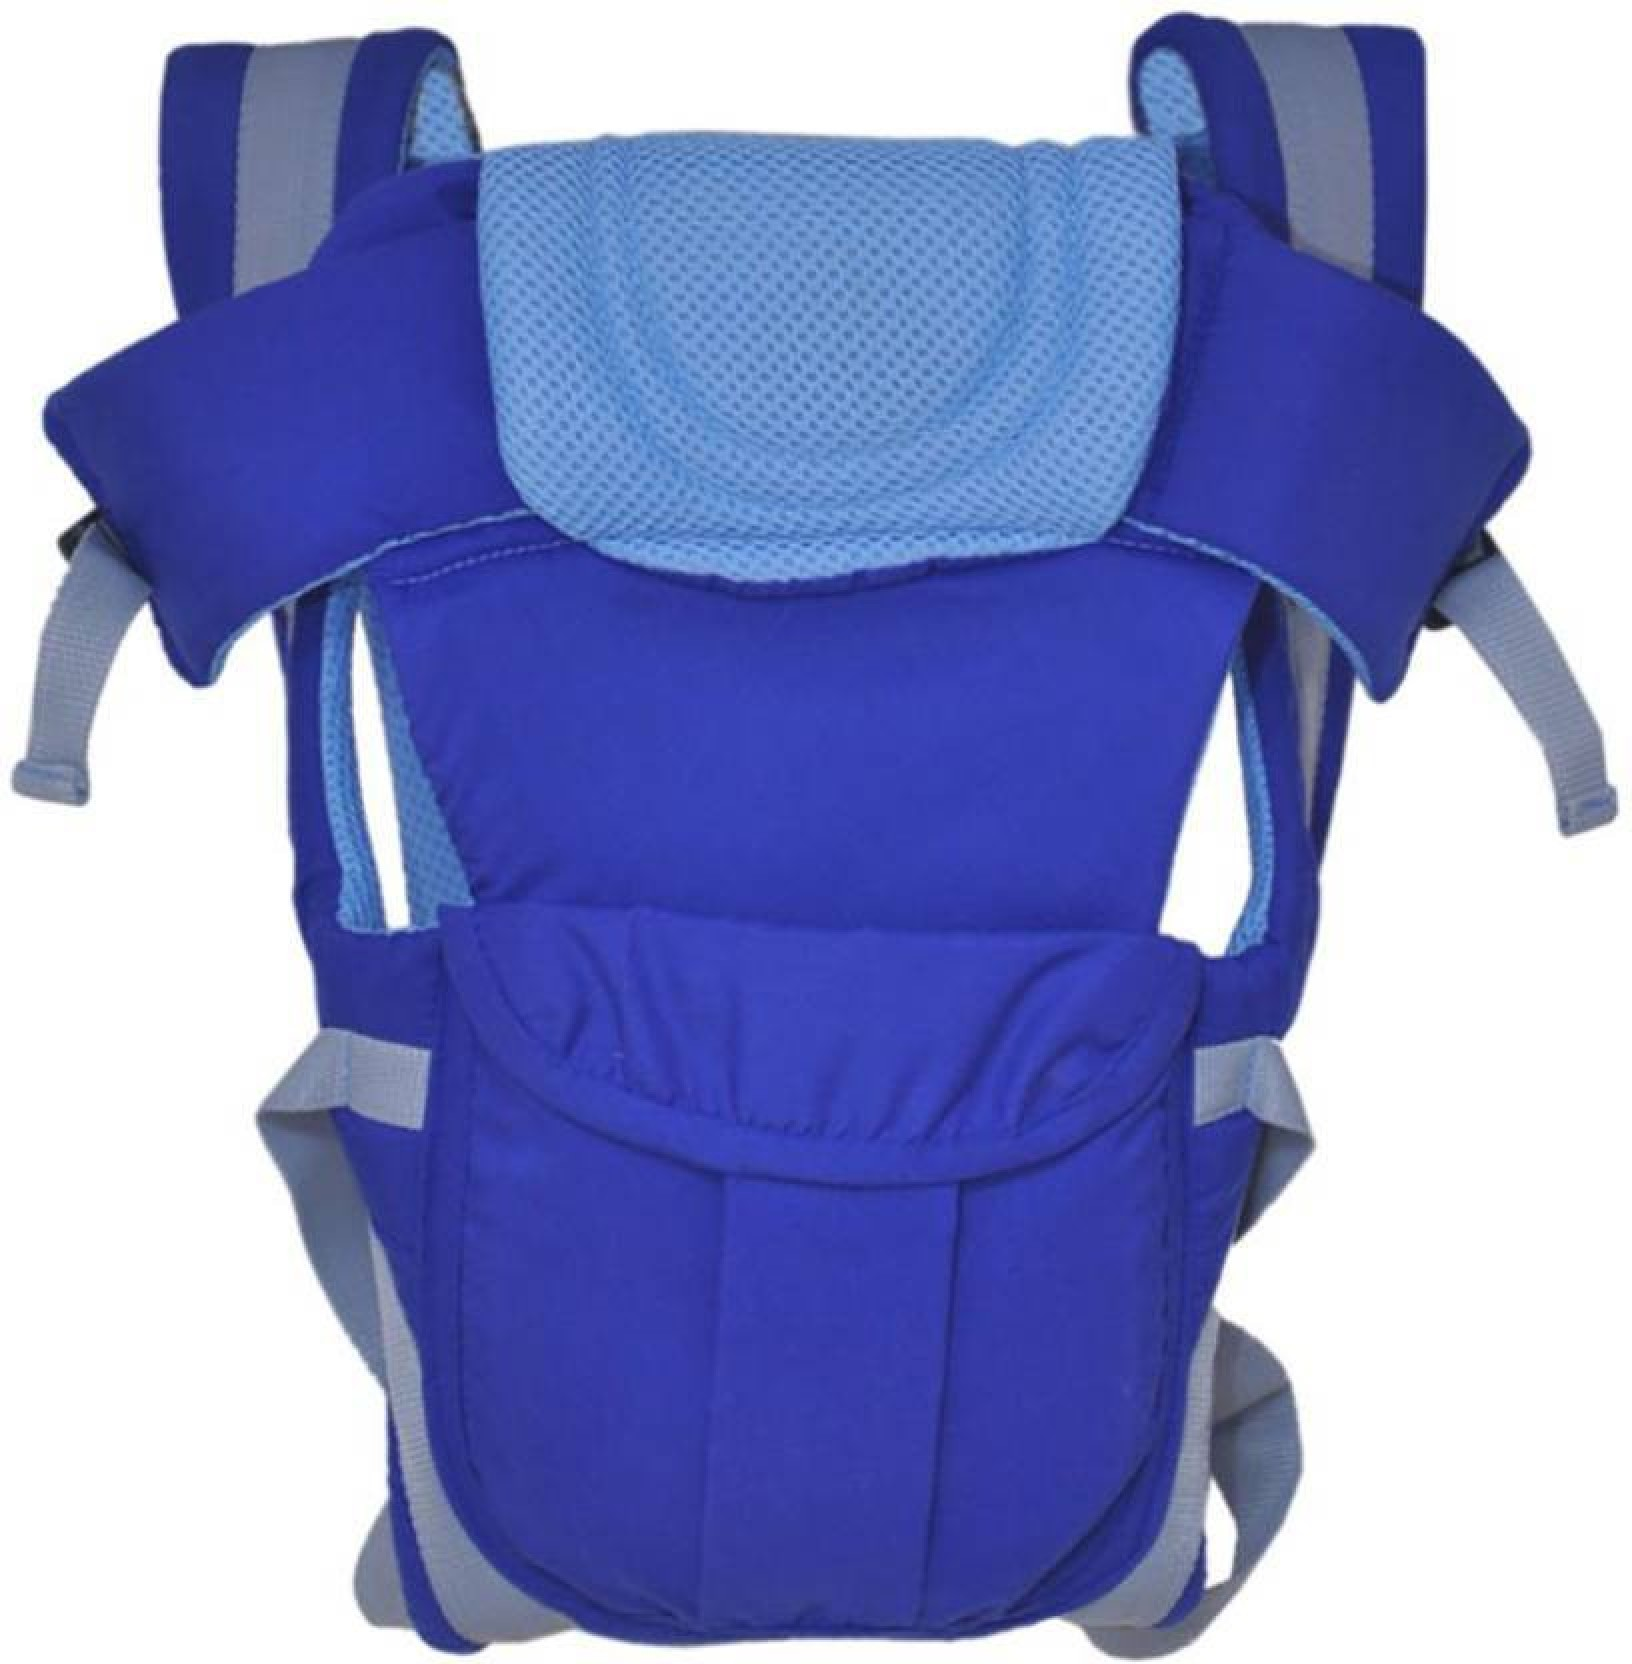 Carters Baby Carrier Hanging Bag Available Babygo Inc Travelling Pouch Organiser On Offer